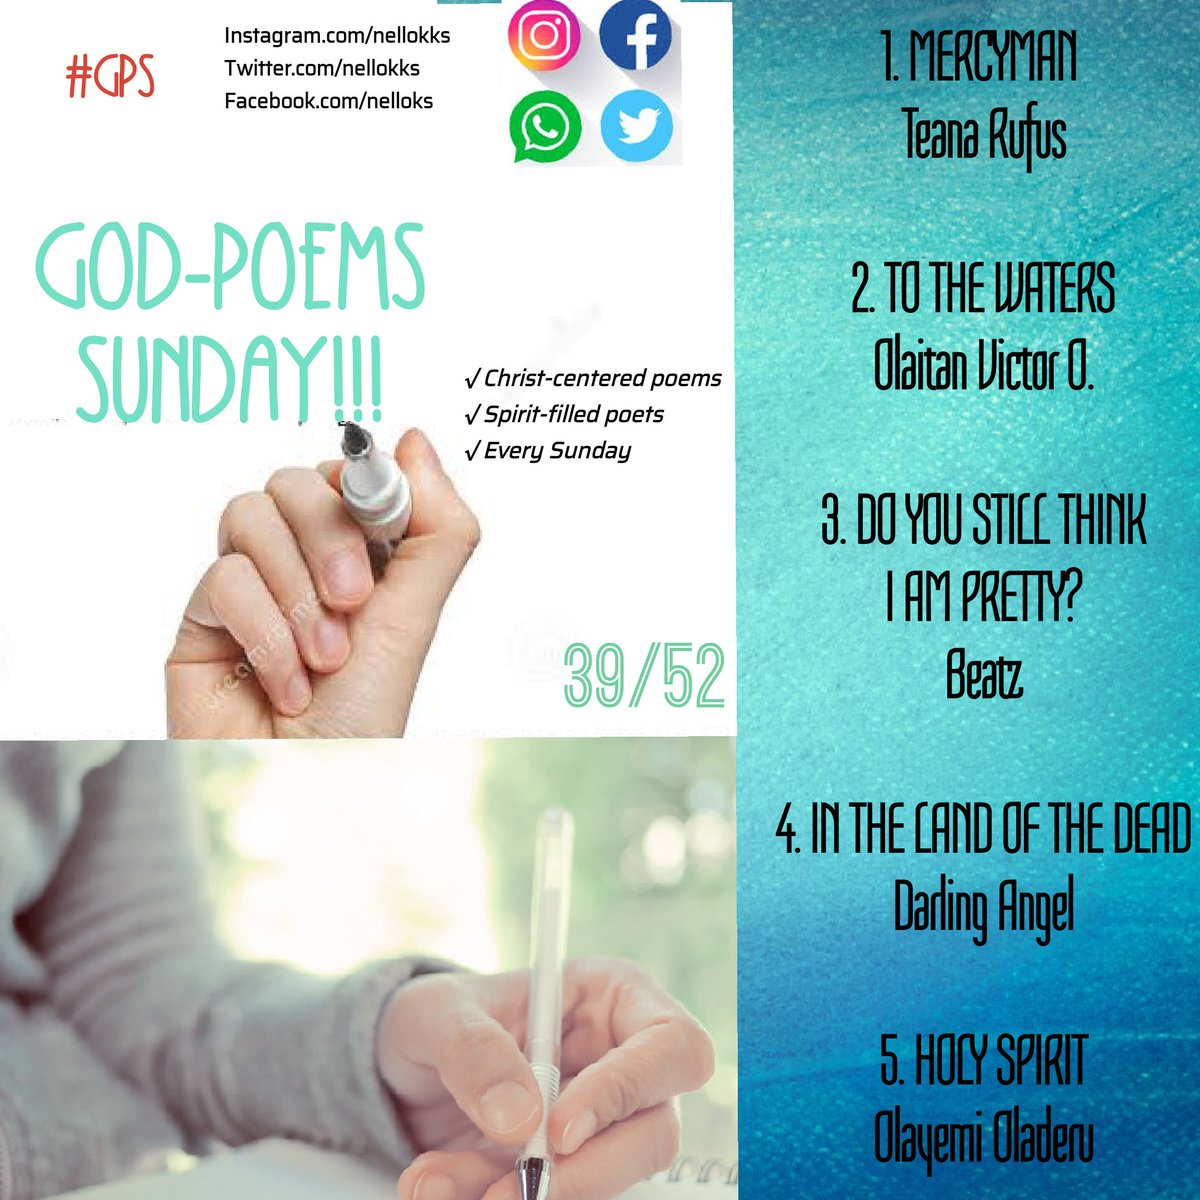 God-Poems Sunday  #GPS  Week 39  #poetry #poems #poets #prose #poetic #wordoflife #Jesus #poetsforJesus #Jesuspoems https://t.co/svypfTqueg